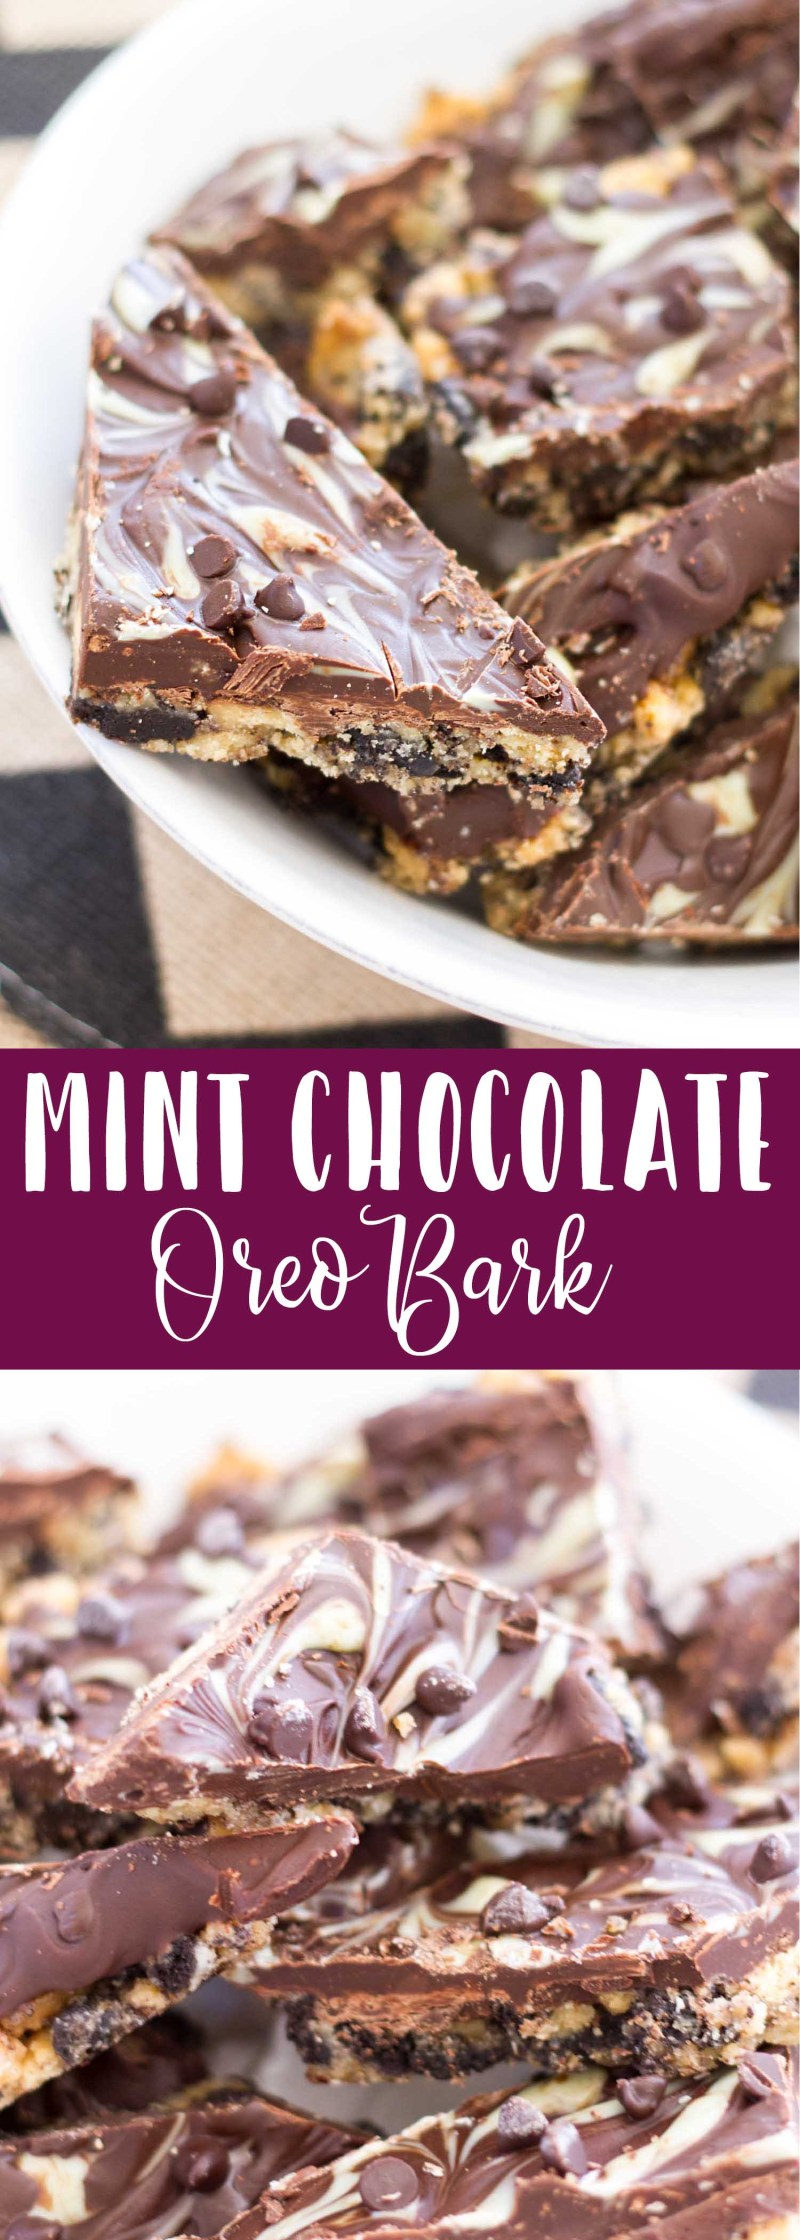 The classic and delicious combination of mint and chocolate is paired with an Oreo cookie crust to create the tastiest, most addictive chocolate bark! You're going to flip over these. Mint chocolate oreo bark is an easy recipe that is perfect for a chocolate fix!